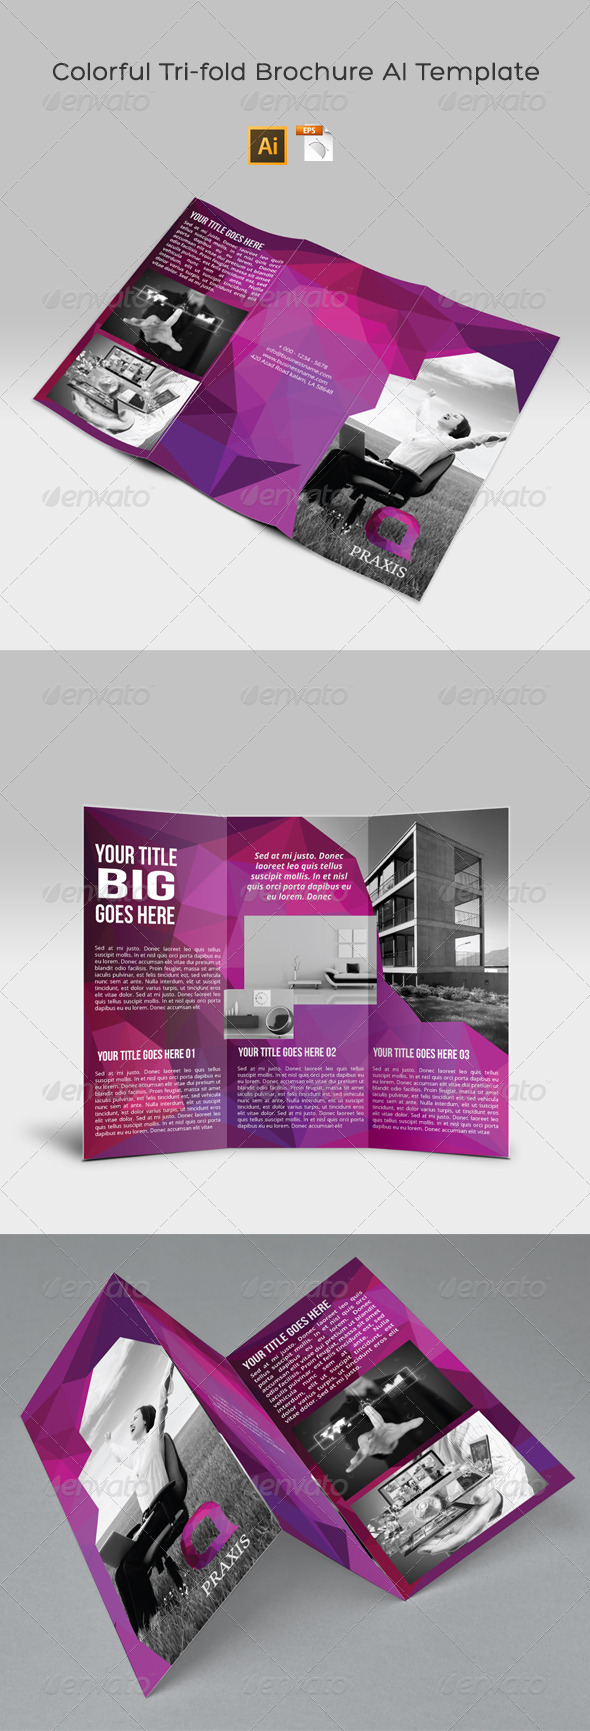 GraphicRiver Colorful Tri-fold Brochure AI Template 8174490